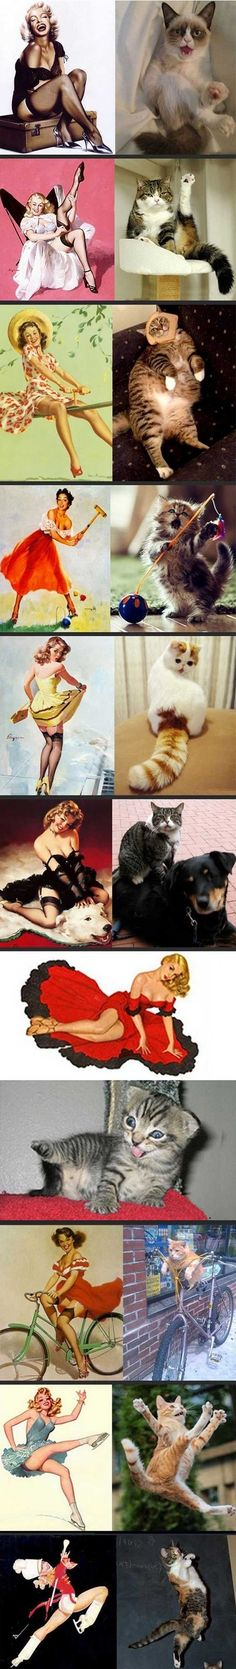 Cats imitating art :D